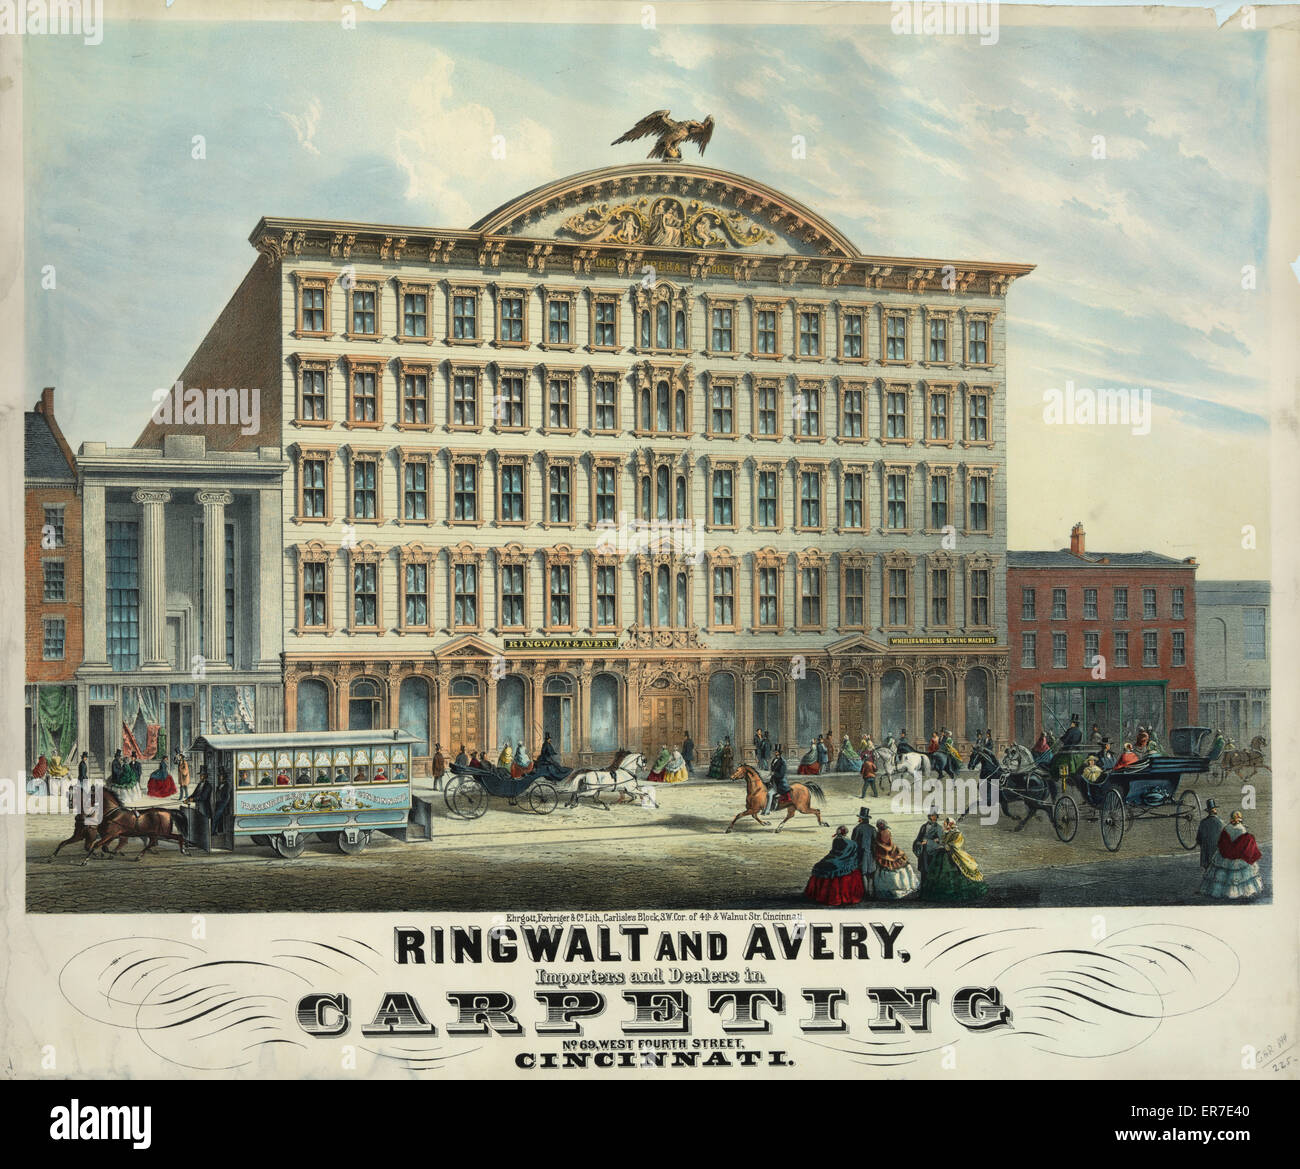 Ringwalt and Avery. Importers and Dealers in. Carperting. - Stock Image